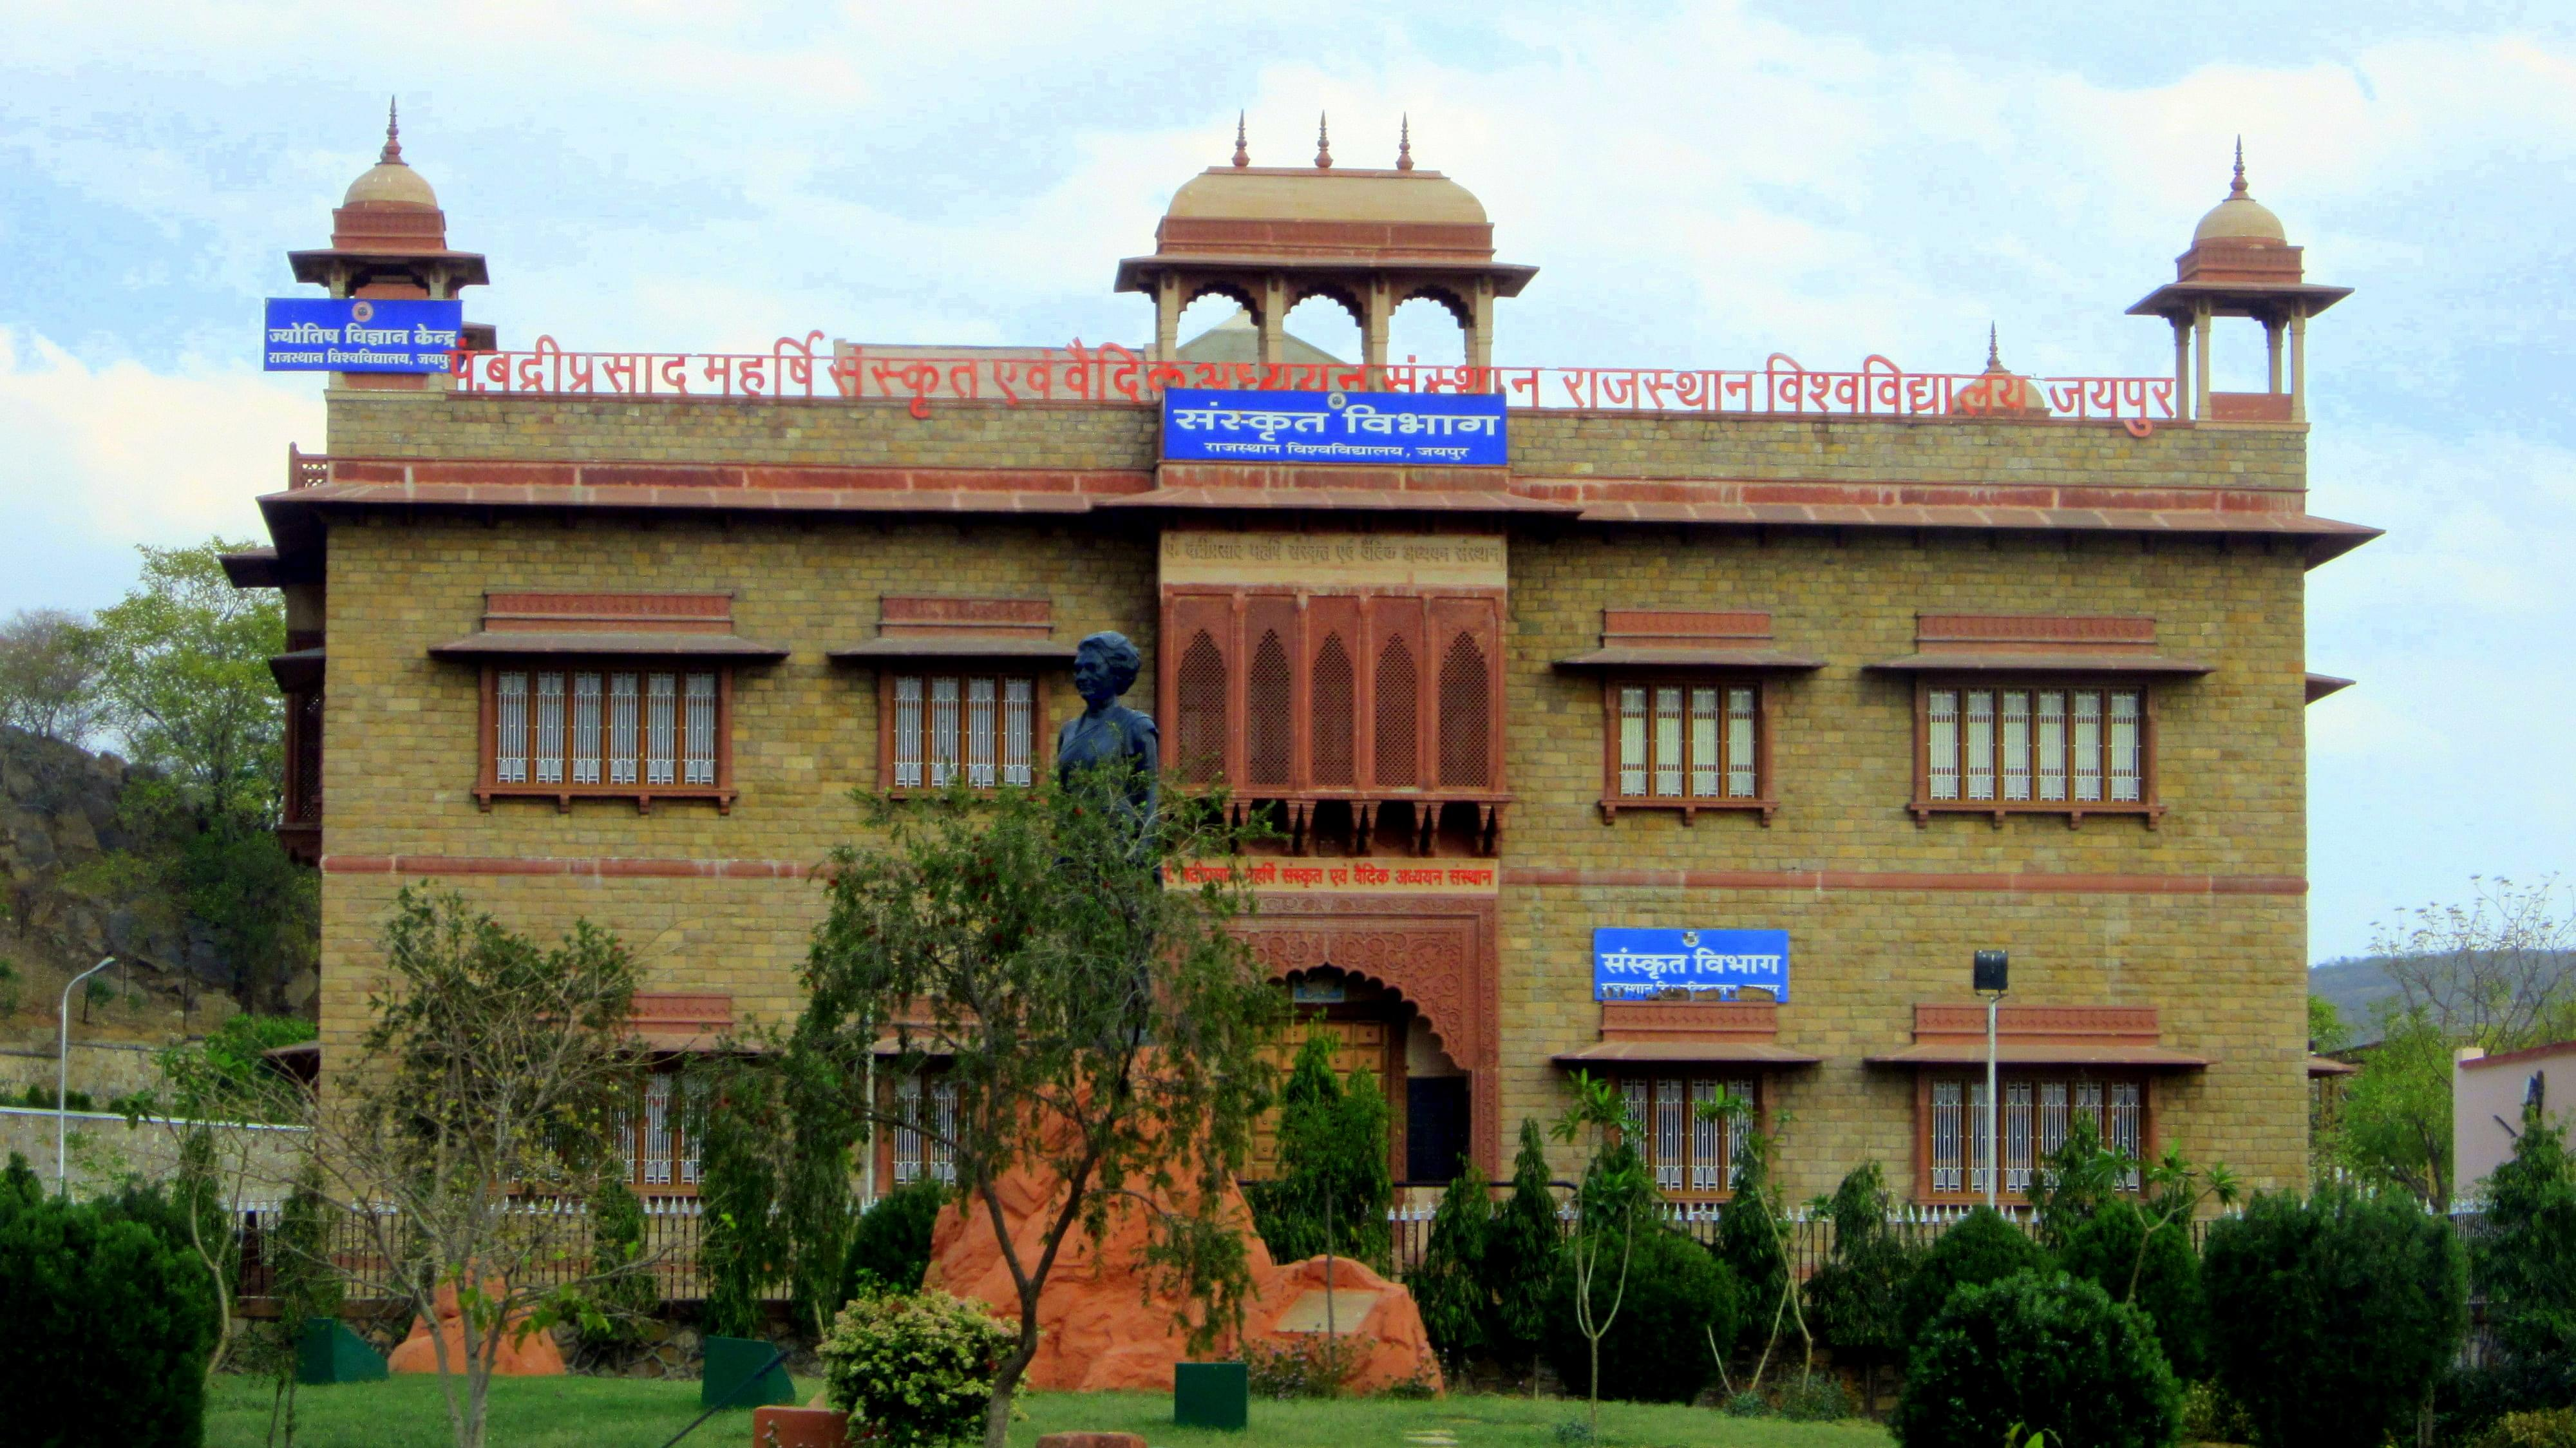 SN College of Education